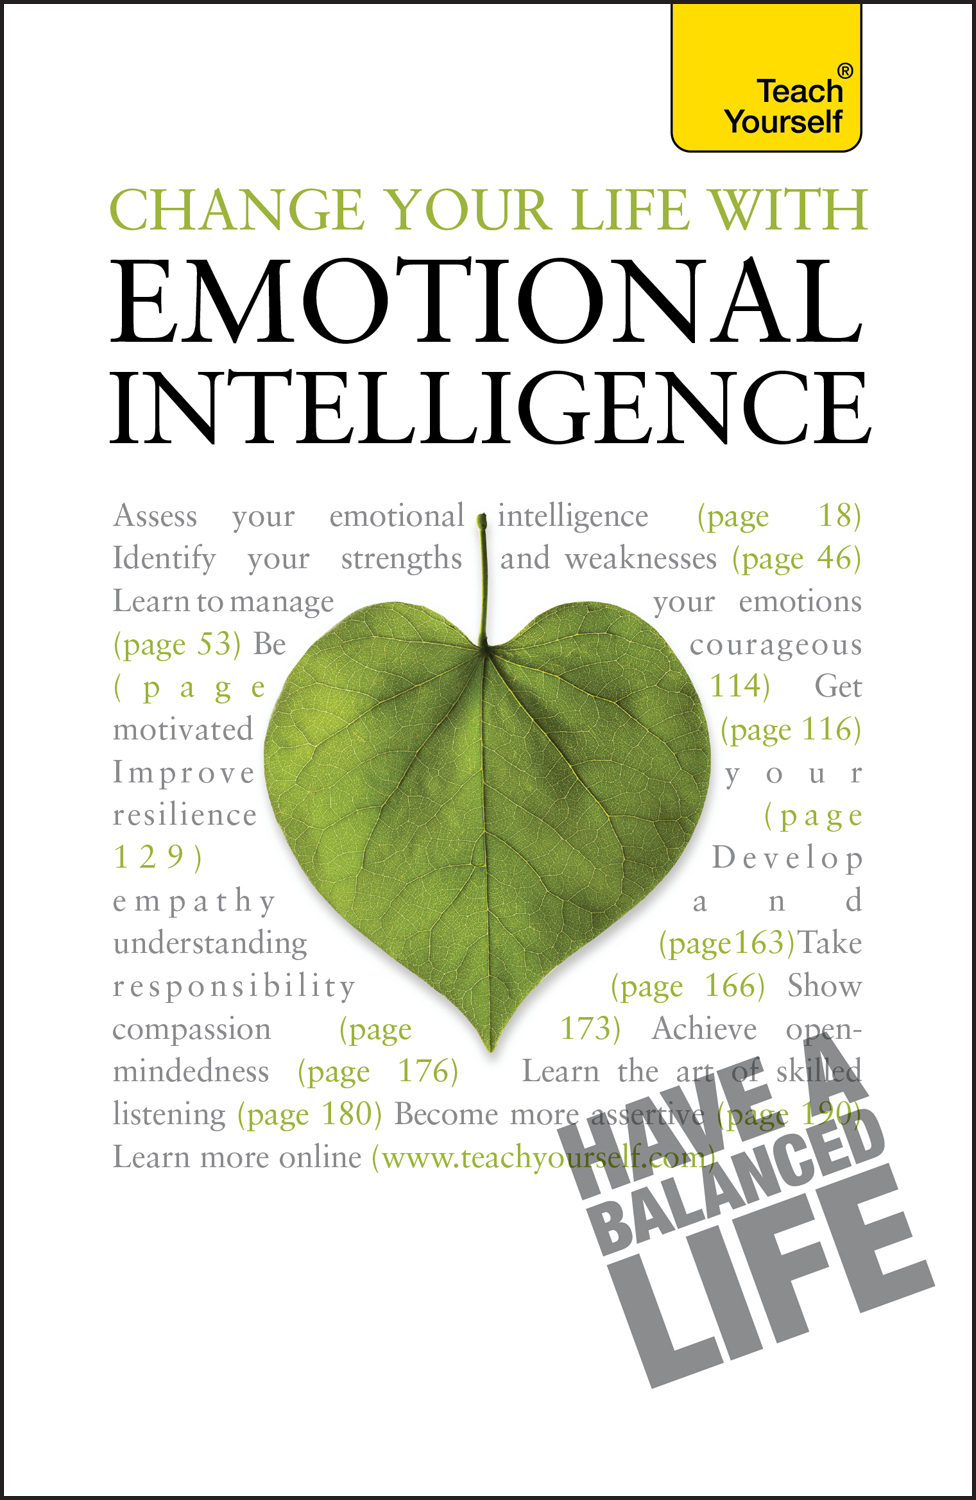 Change Your Life With Emotional Intelligence By: Christine Wilding